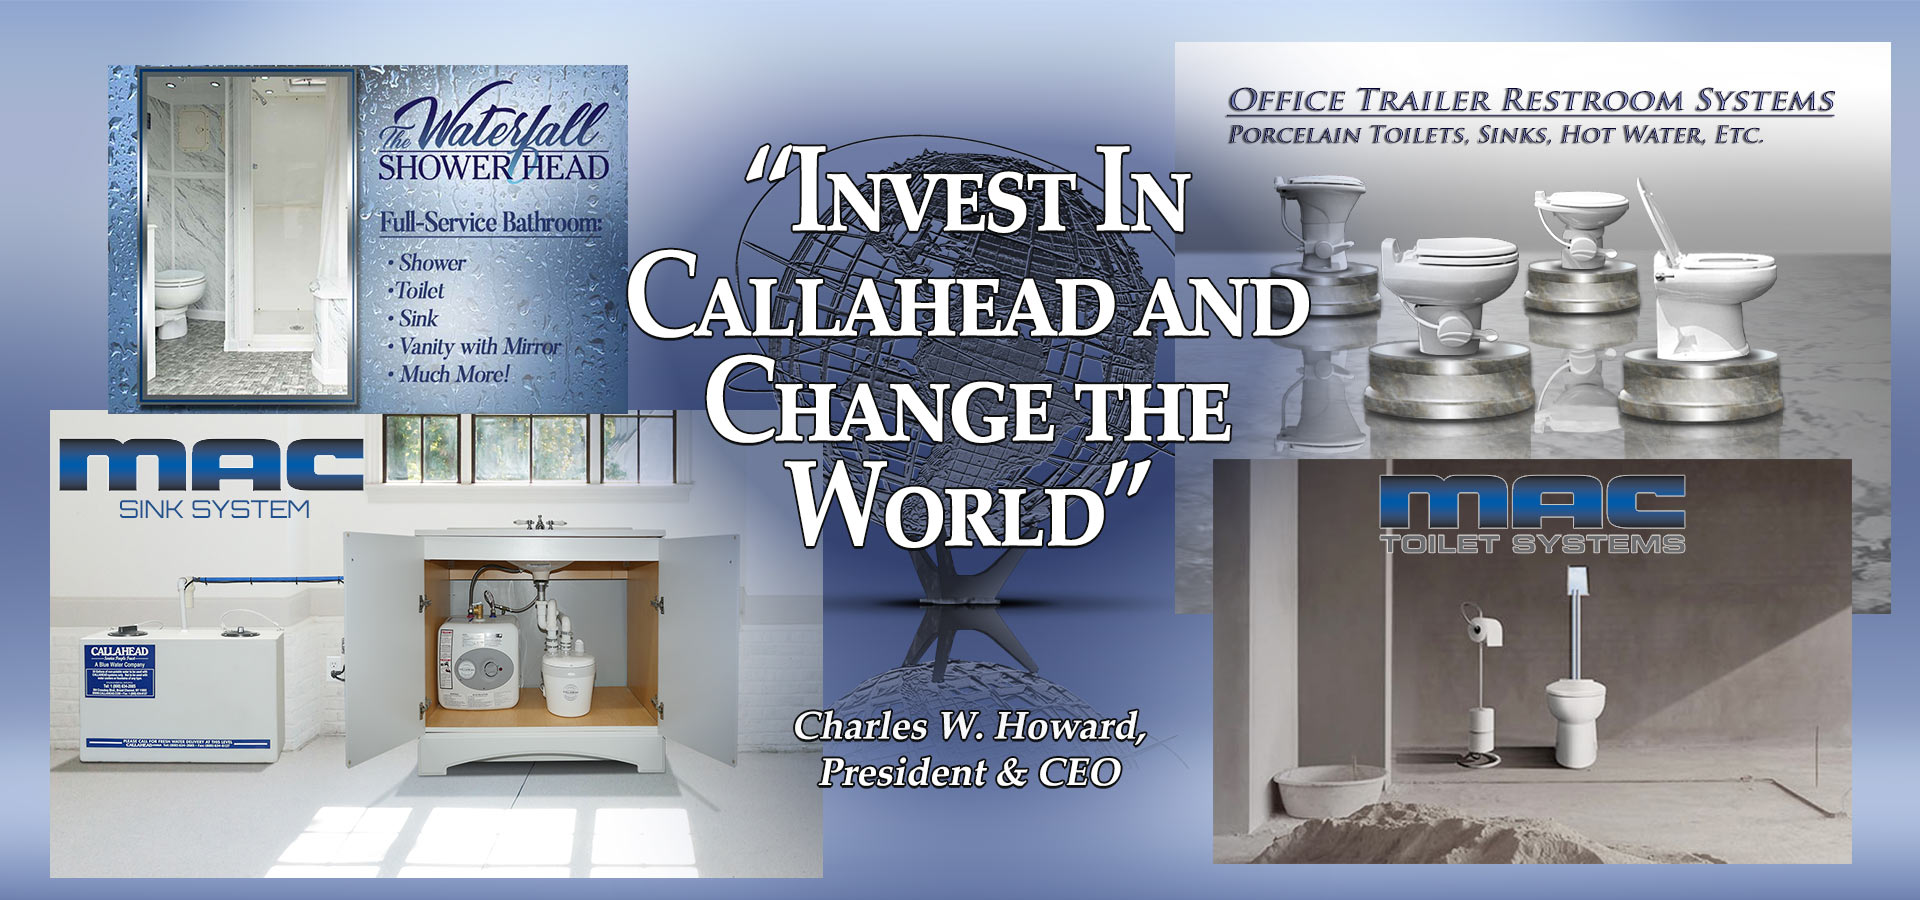 Invest In Callahead And Change The World - Charles W. Howard, President and CEO